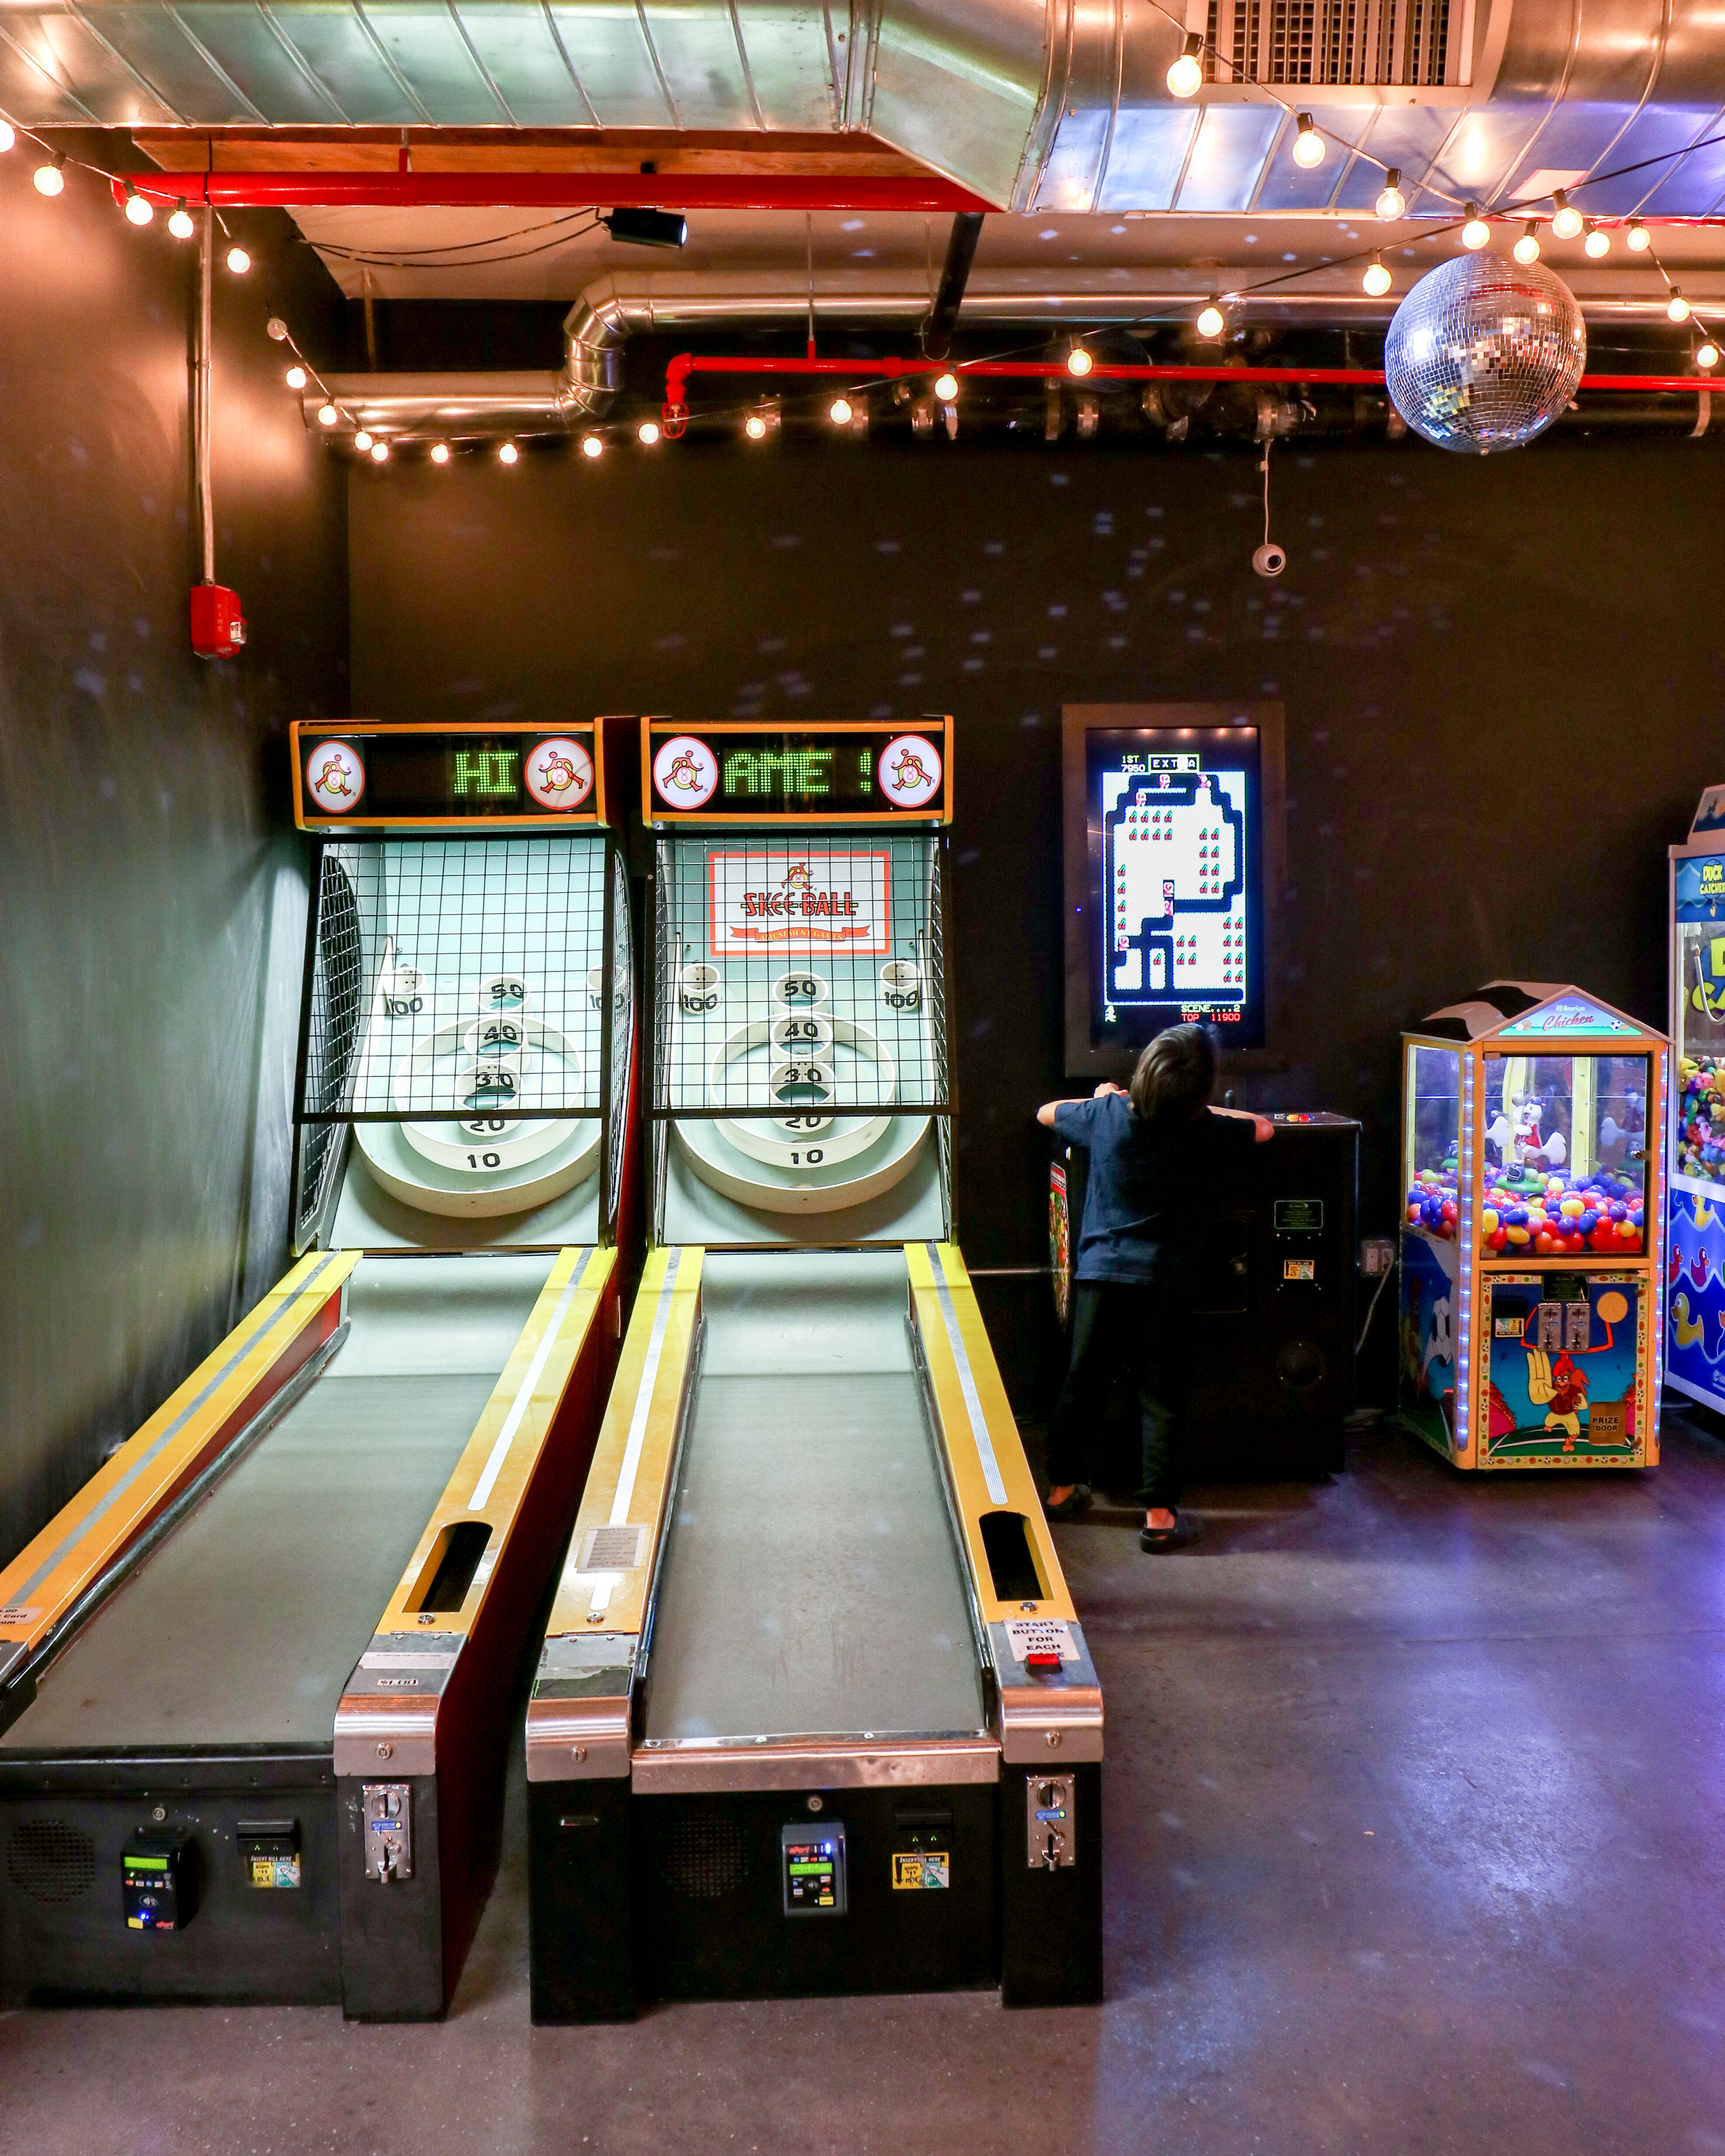 Games attract fun for all ages, skee ball, basketball, and a variety of others in Williamsburg